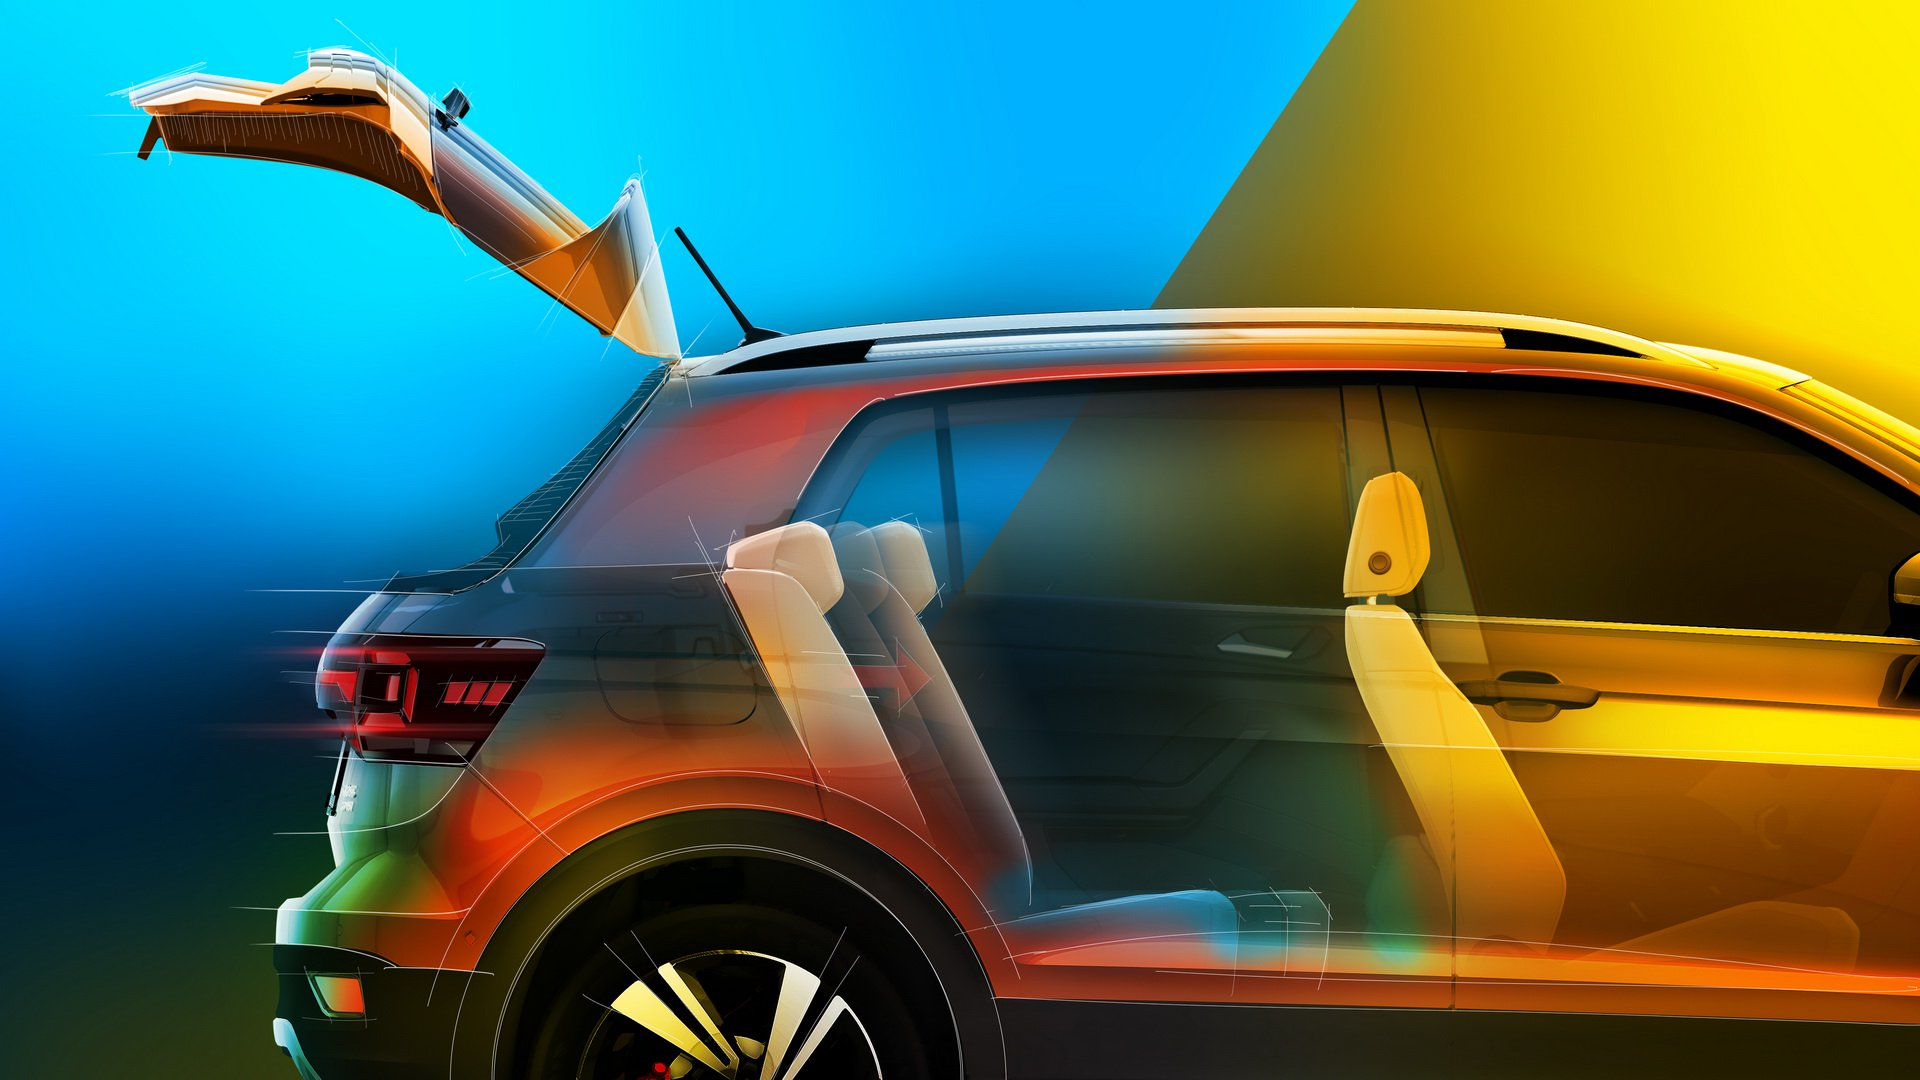 Volkswagen AG has revealed some further specifics regarding the interior of its upcoming T-Cross mini-SUV along with a few new photos